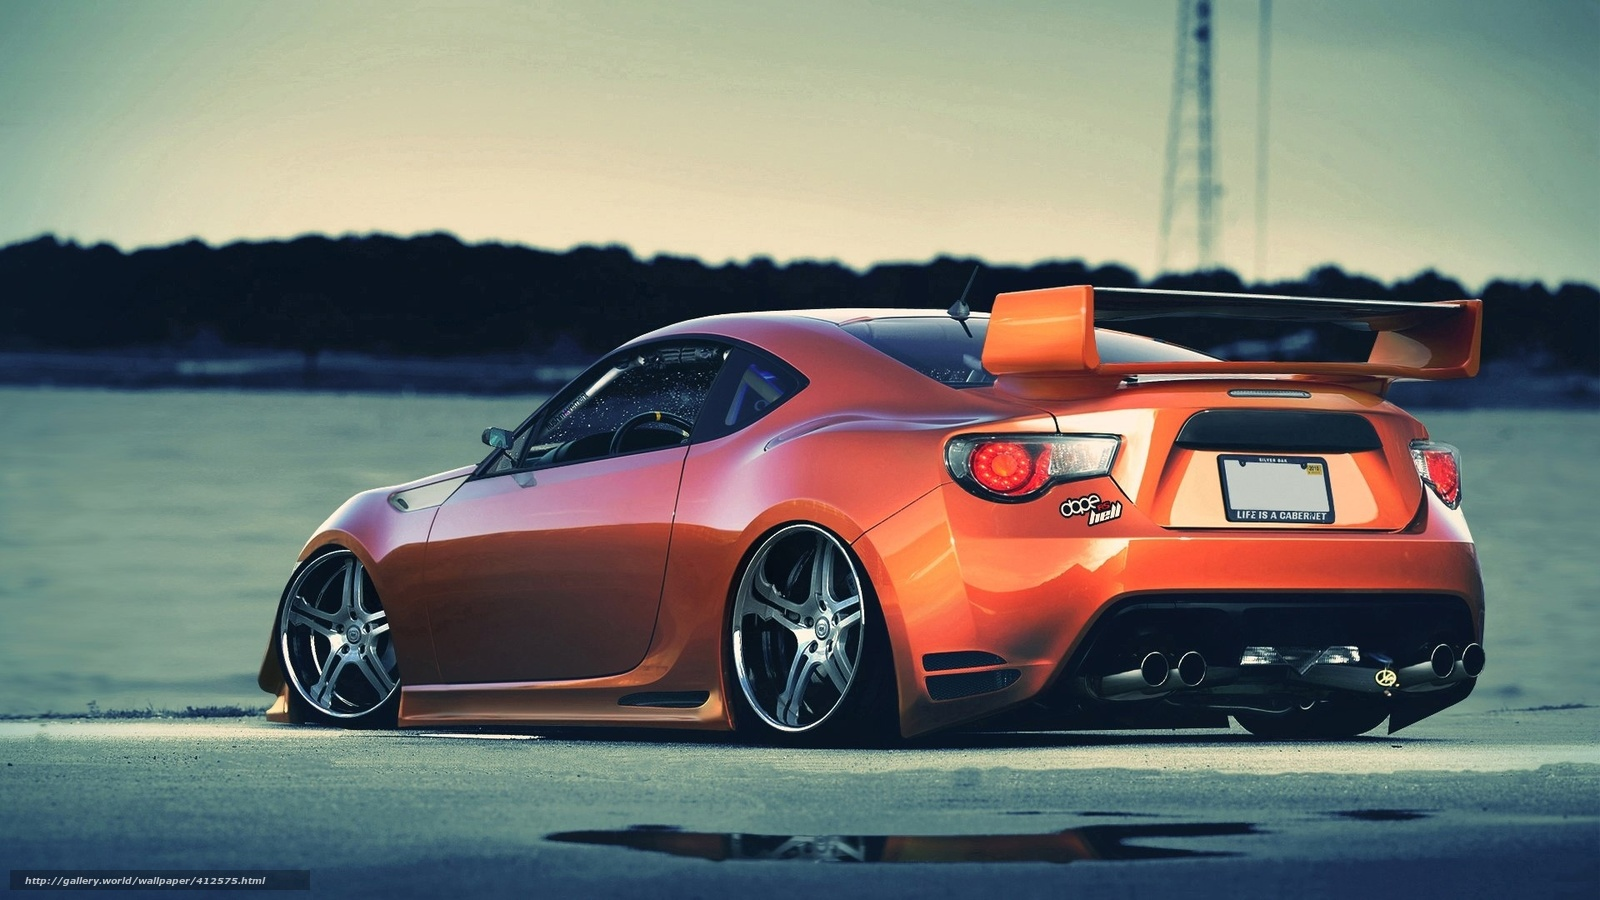 Download Wallpaper Car Tuning Beautiful Cars Free Desktop Wallpaper In The Resolution 1920x1080 Picture 412575